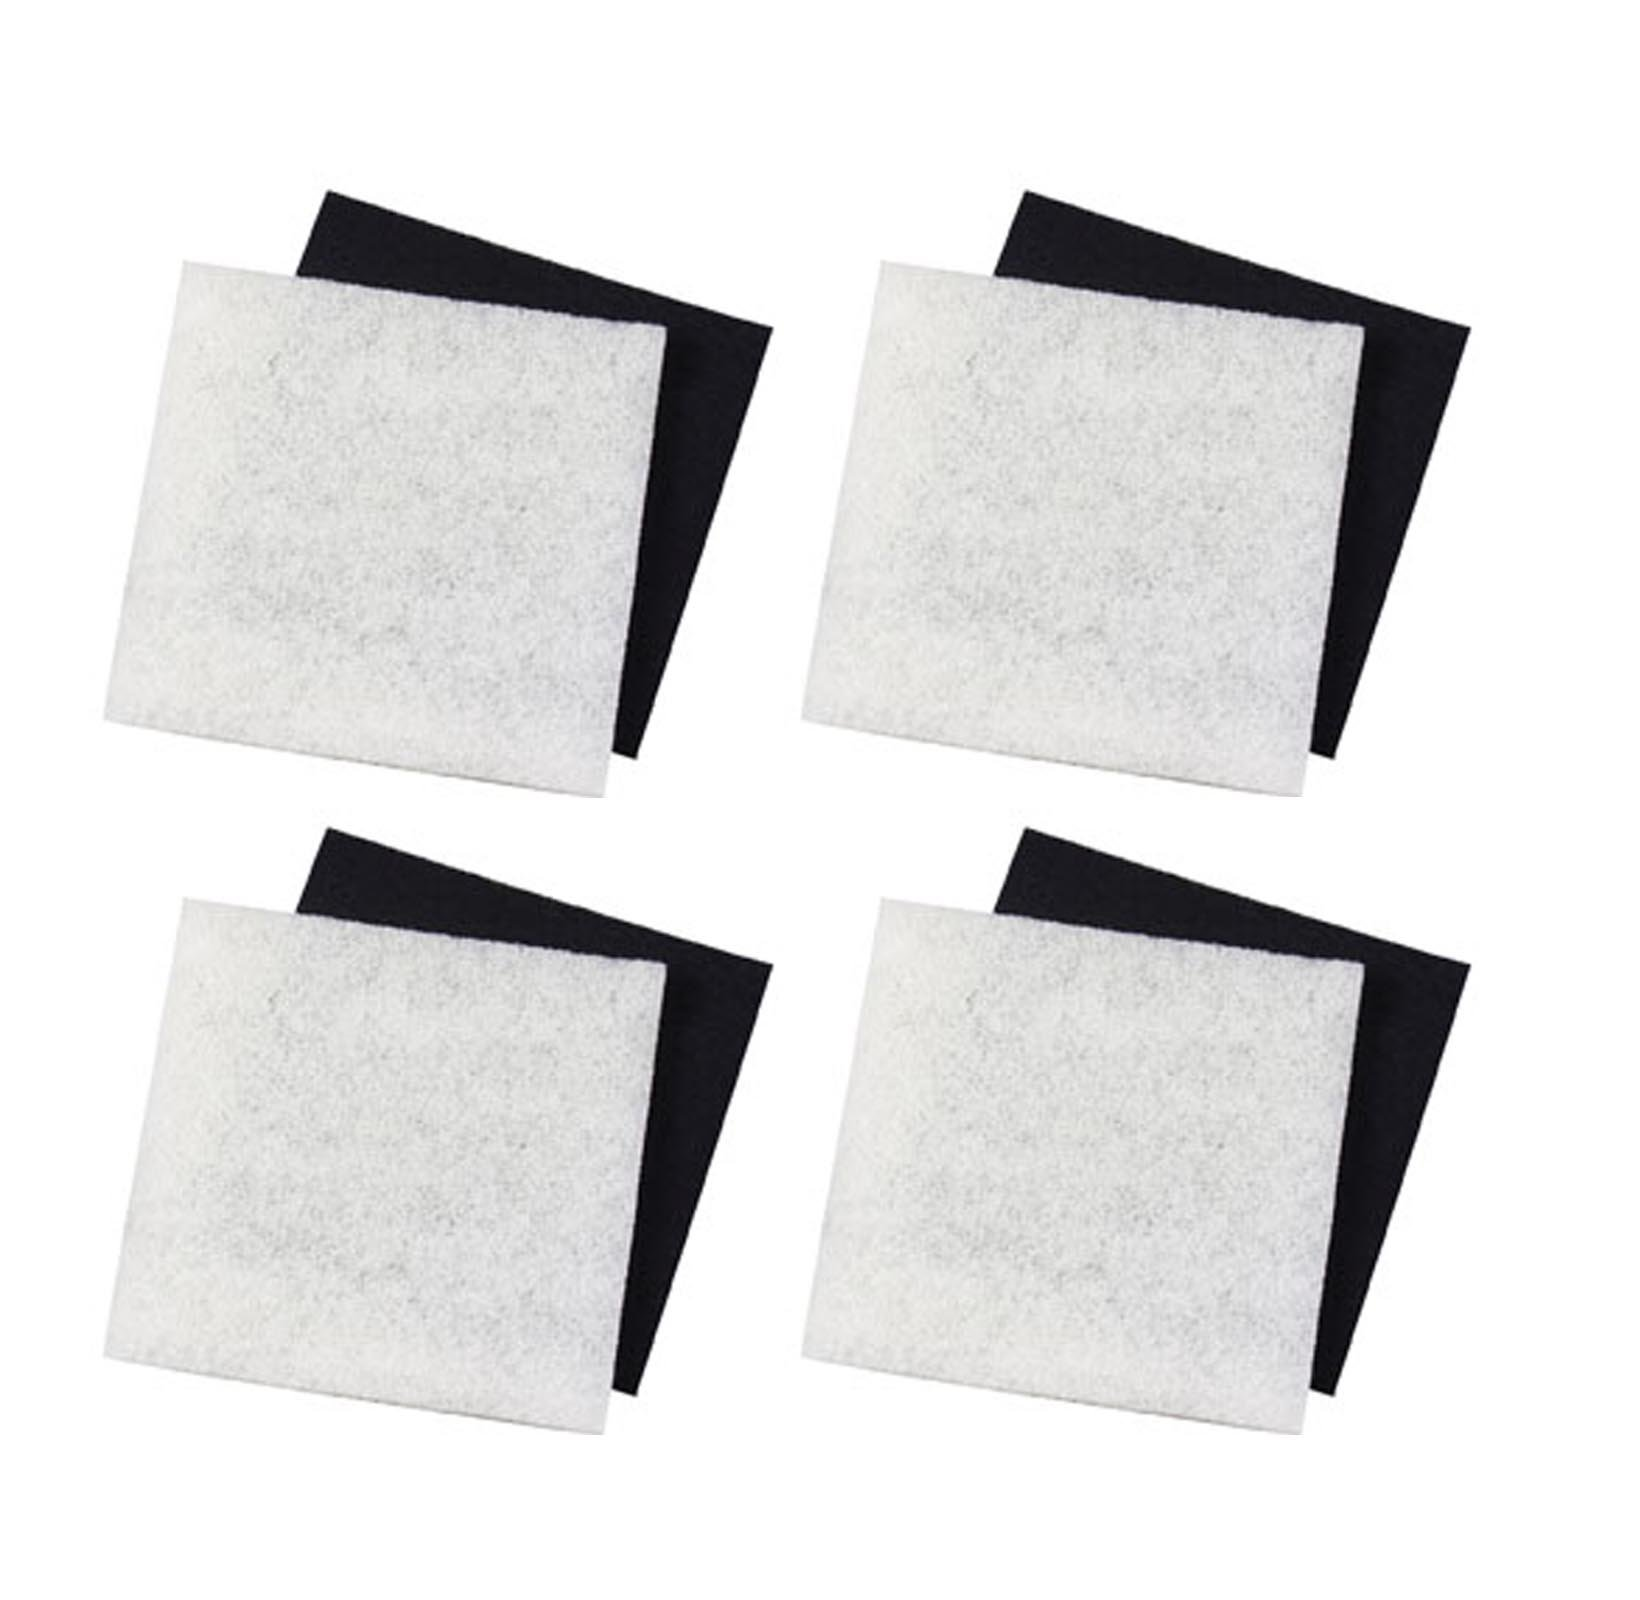 PondMaster (4) 1000 & 2000 Carbon & Coarse Poly Pad Replacement Filters   12202